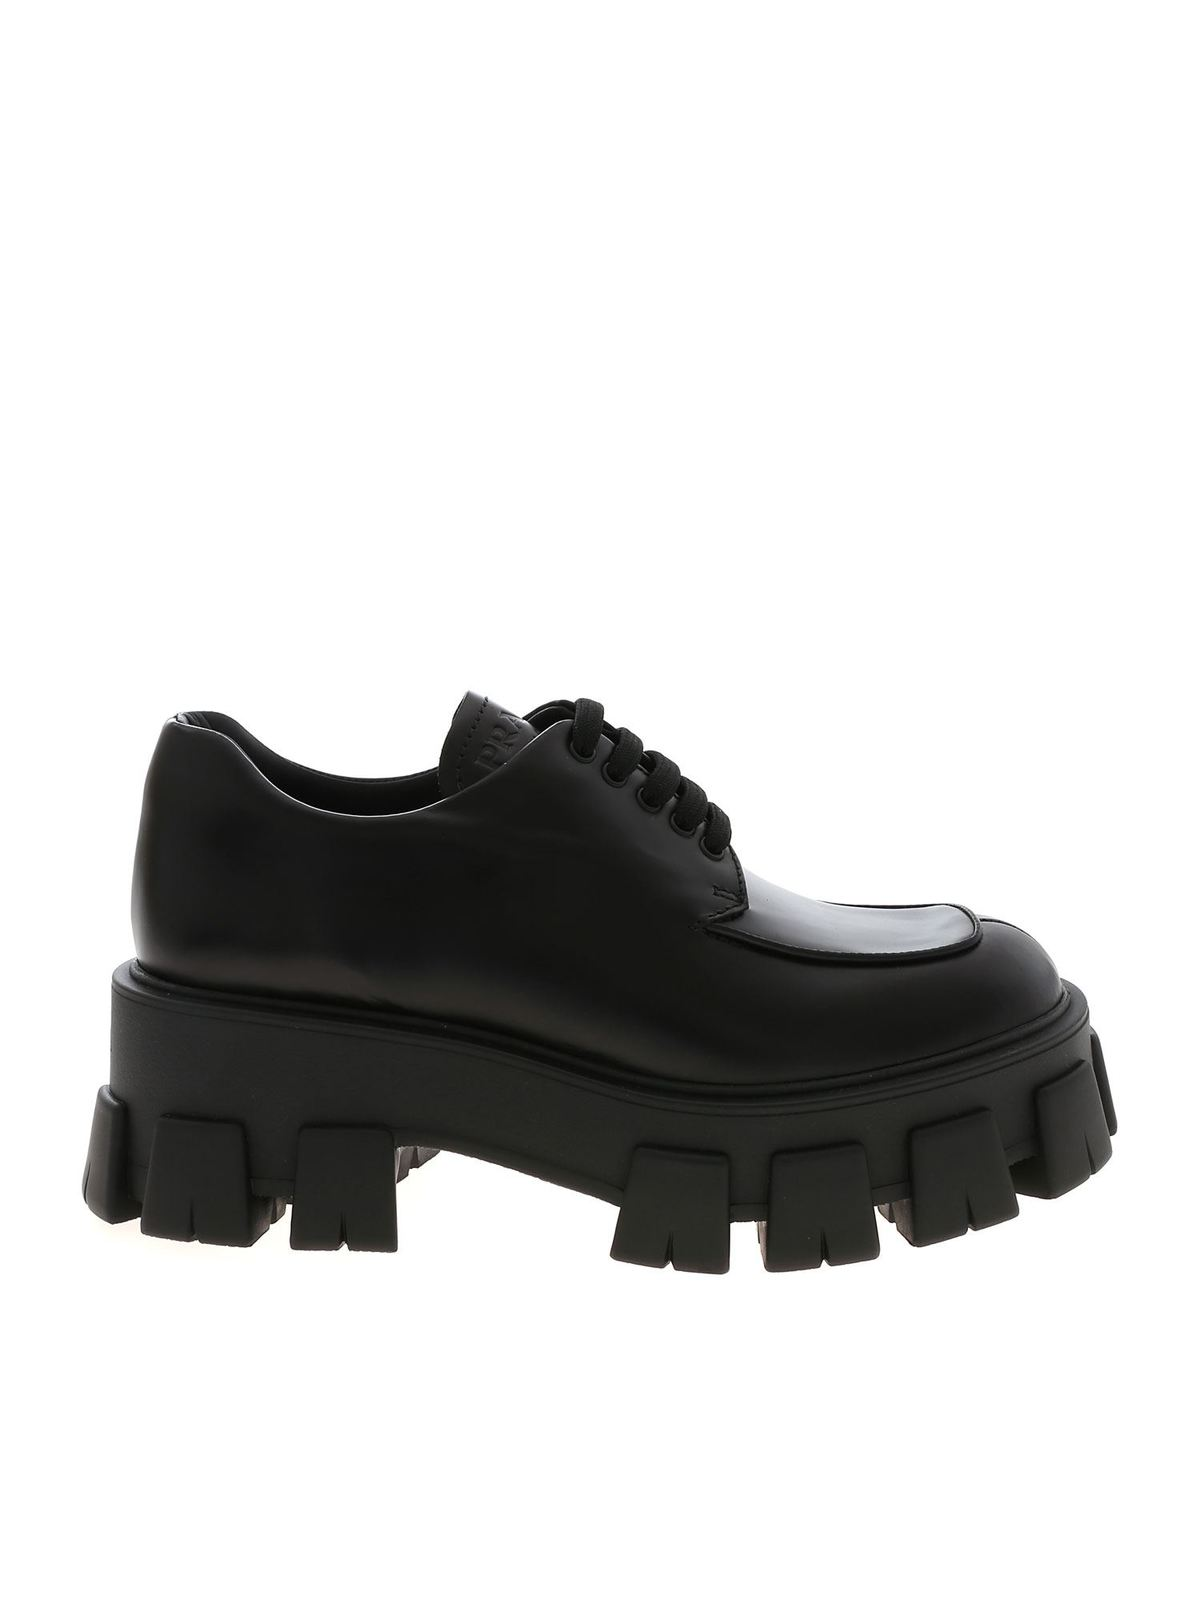 Prada MONOLITH DERBY WITH WEDGE IN BLACK